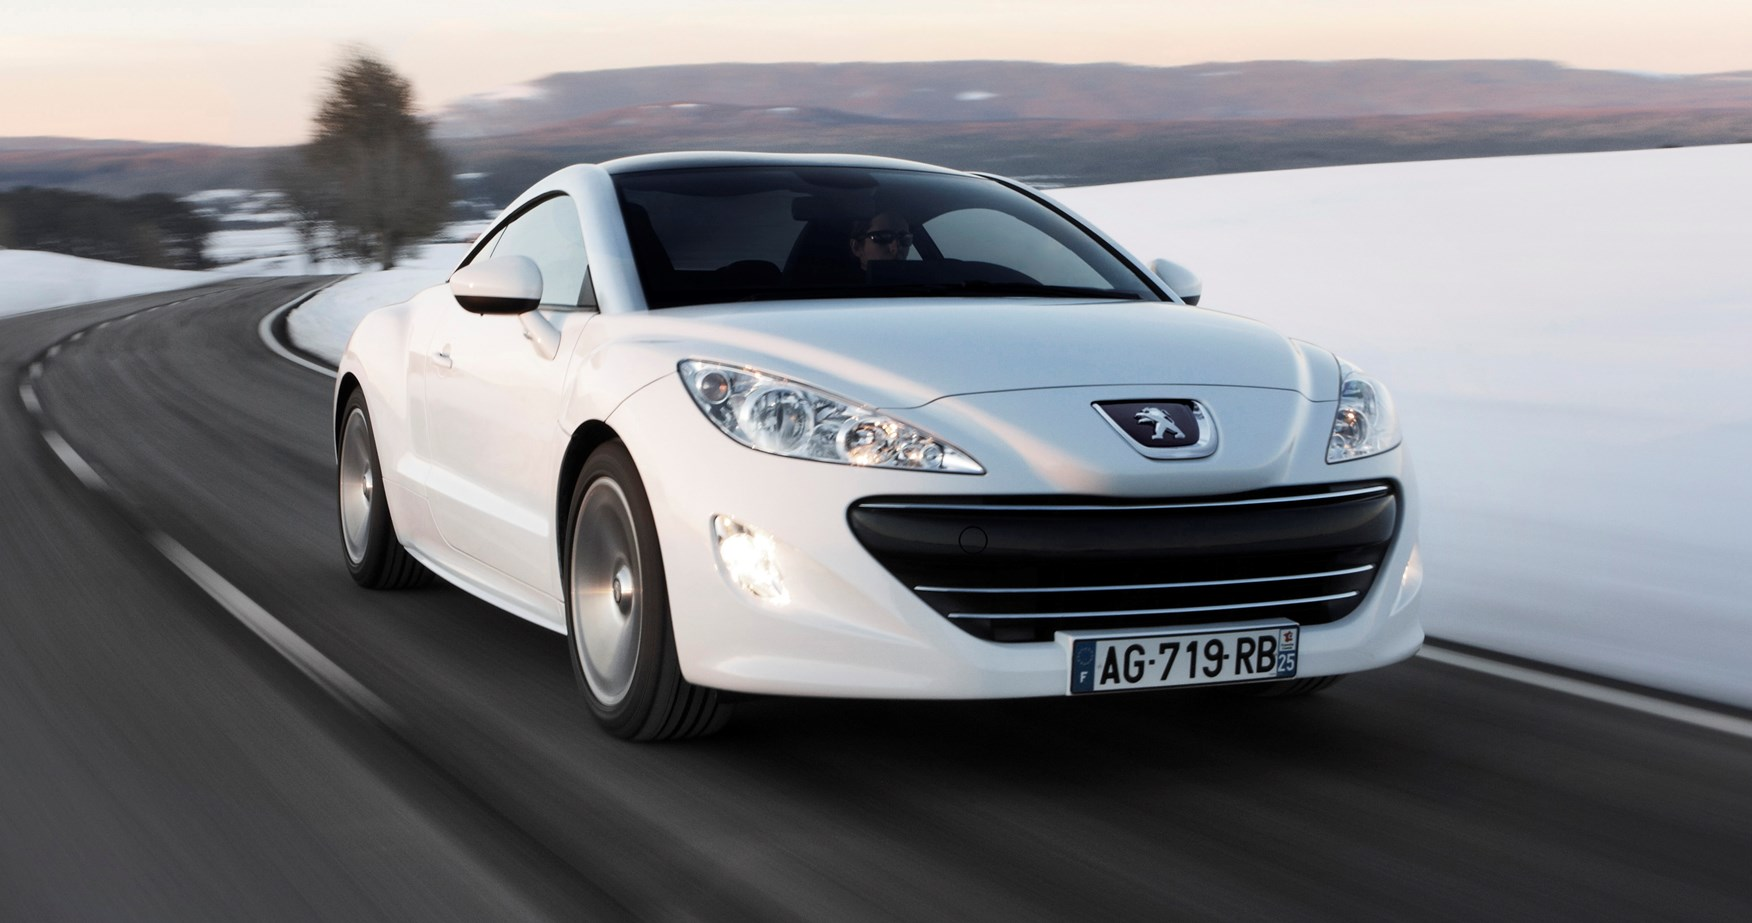 peugeot rcz for sale used peugeot rcz cars parkers autos post. Black Bedroom Furniture Sets. Home Design Ideas